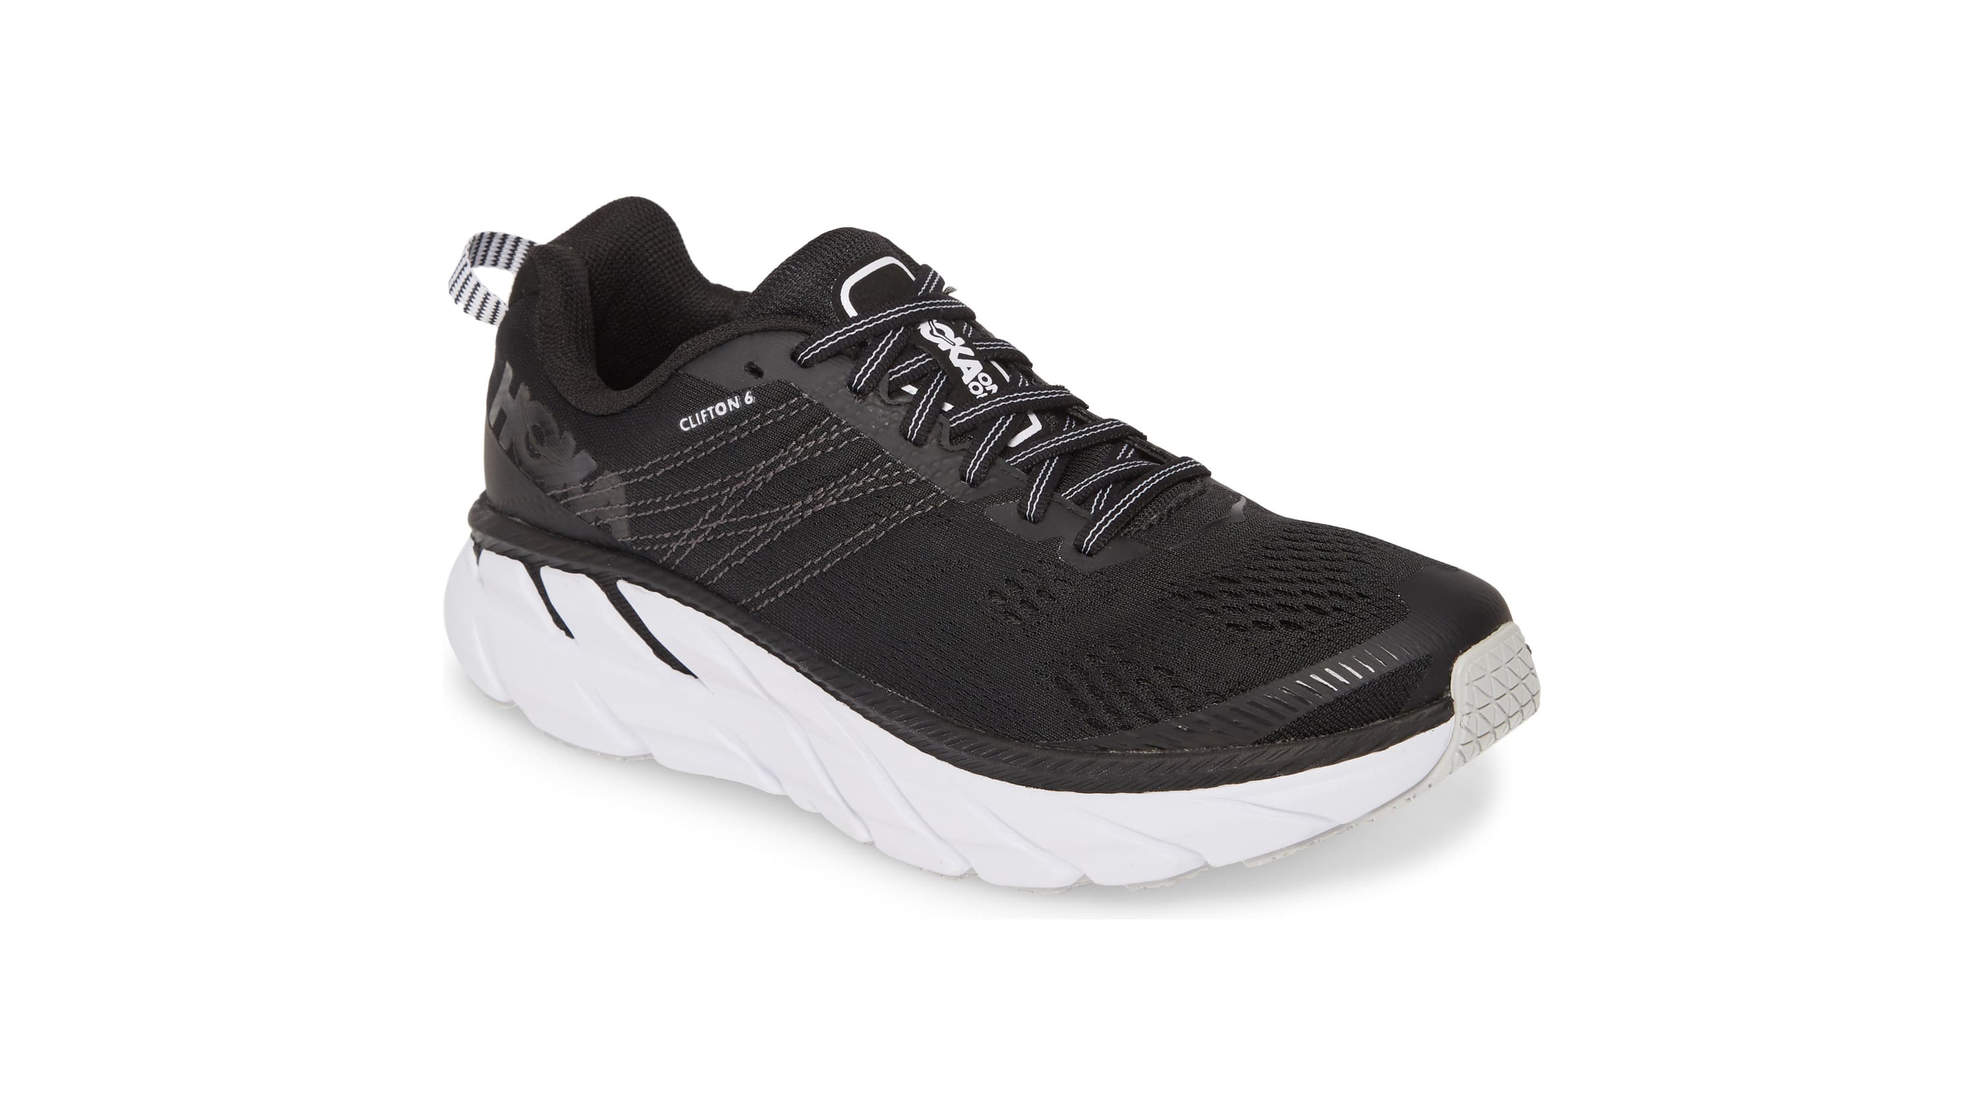 HOKA ONE ONE Clifton 6 Running Shoe